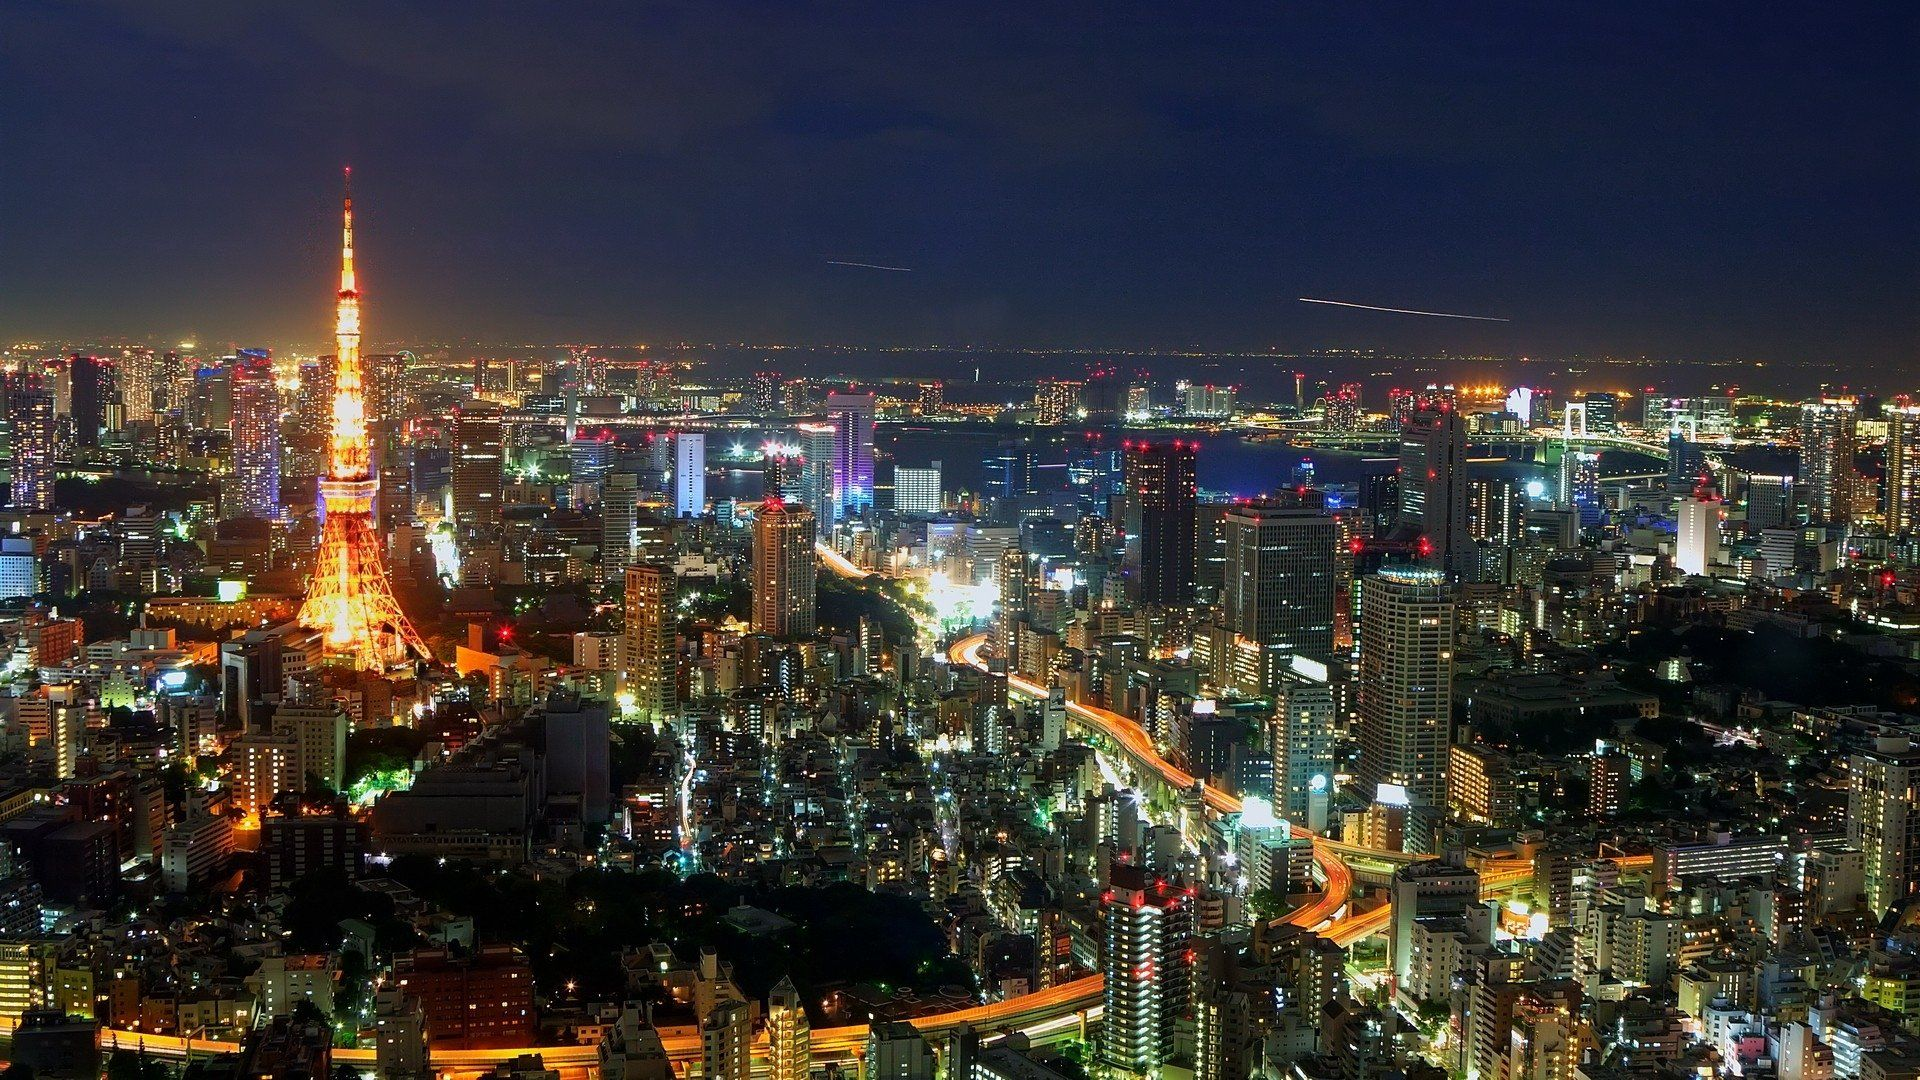 Easter Flights to Tokyo, Starting from $79, Call Now +1-855-948-6886